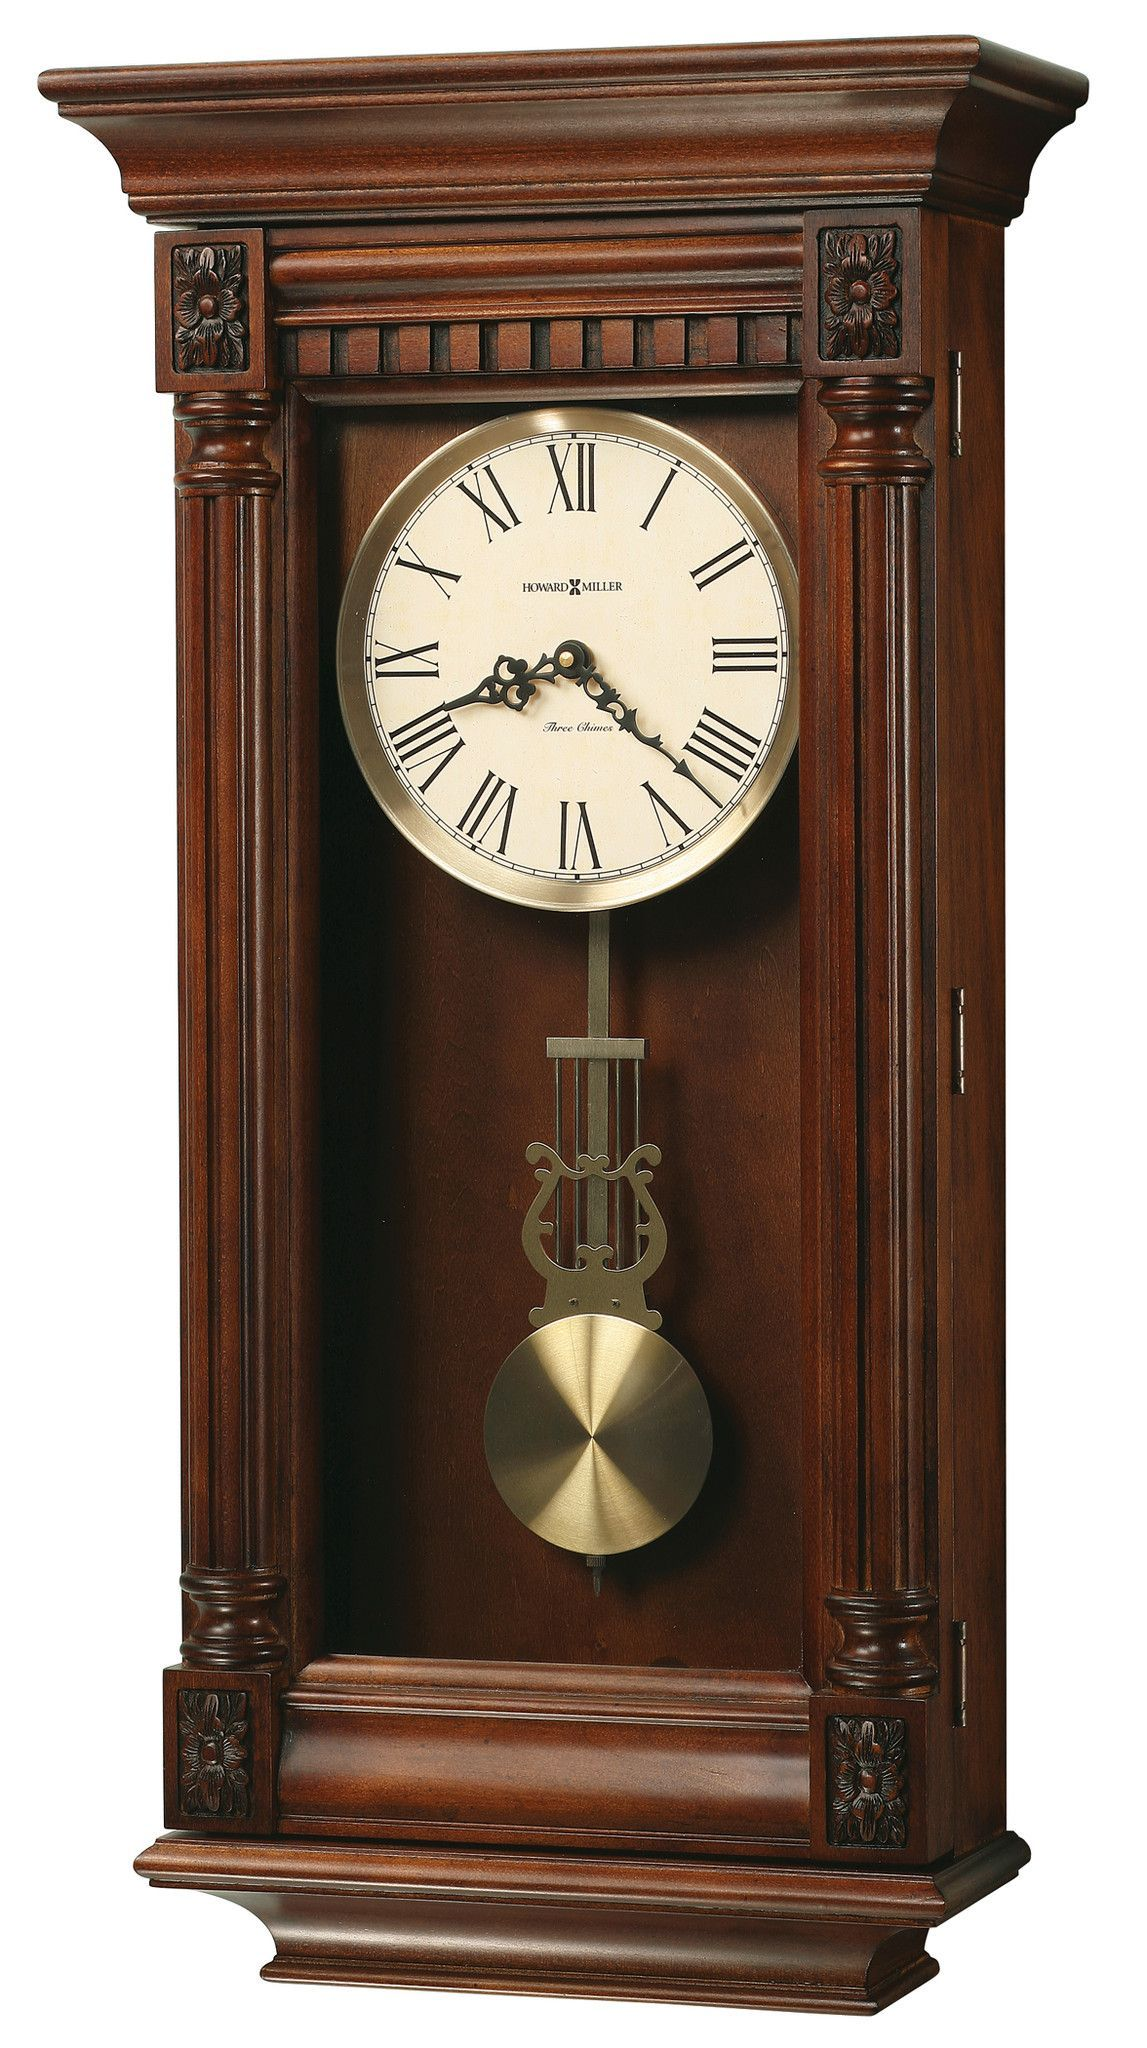 Lewisburg Wall Clock Vintage Wall Clock Chiming Wall Clocks